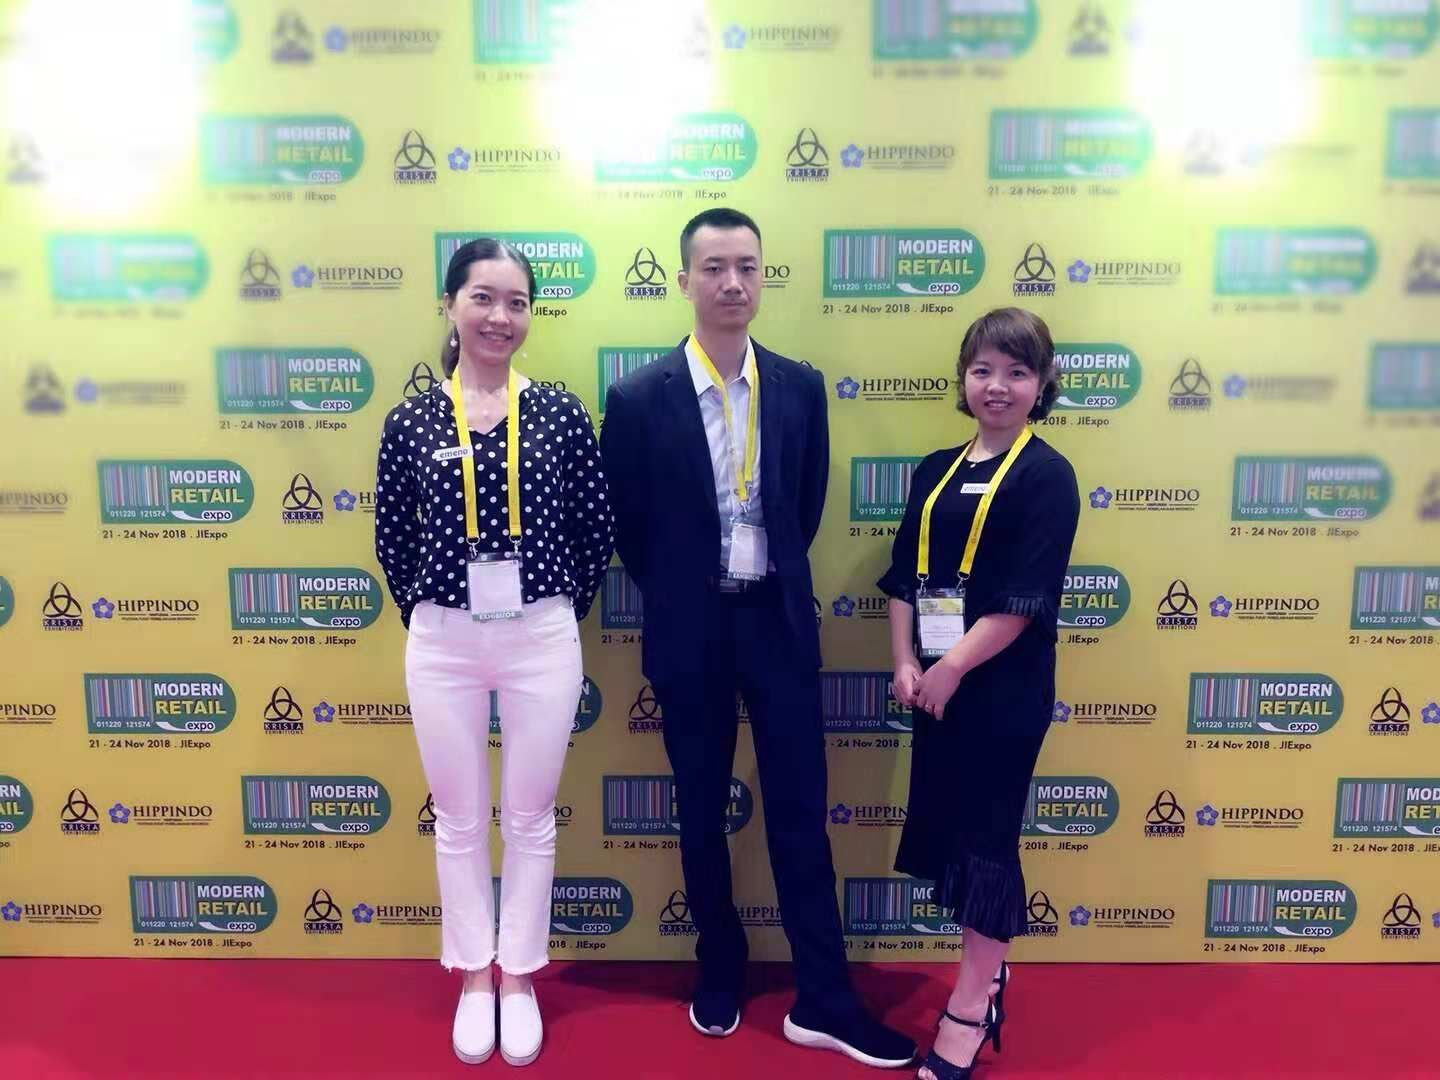 Emeno Attend Modern Retail Expo 2018 Exhibition